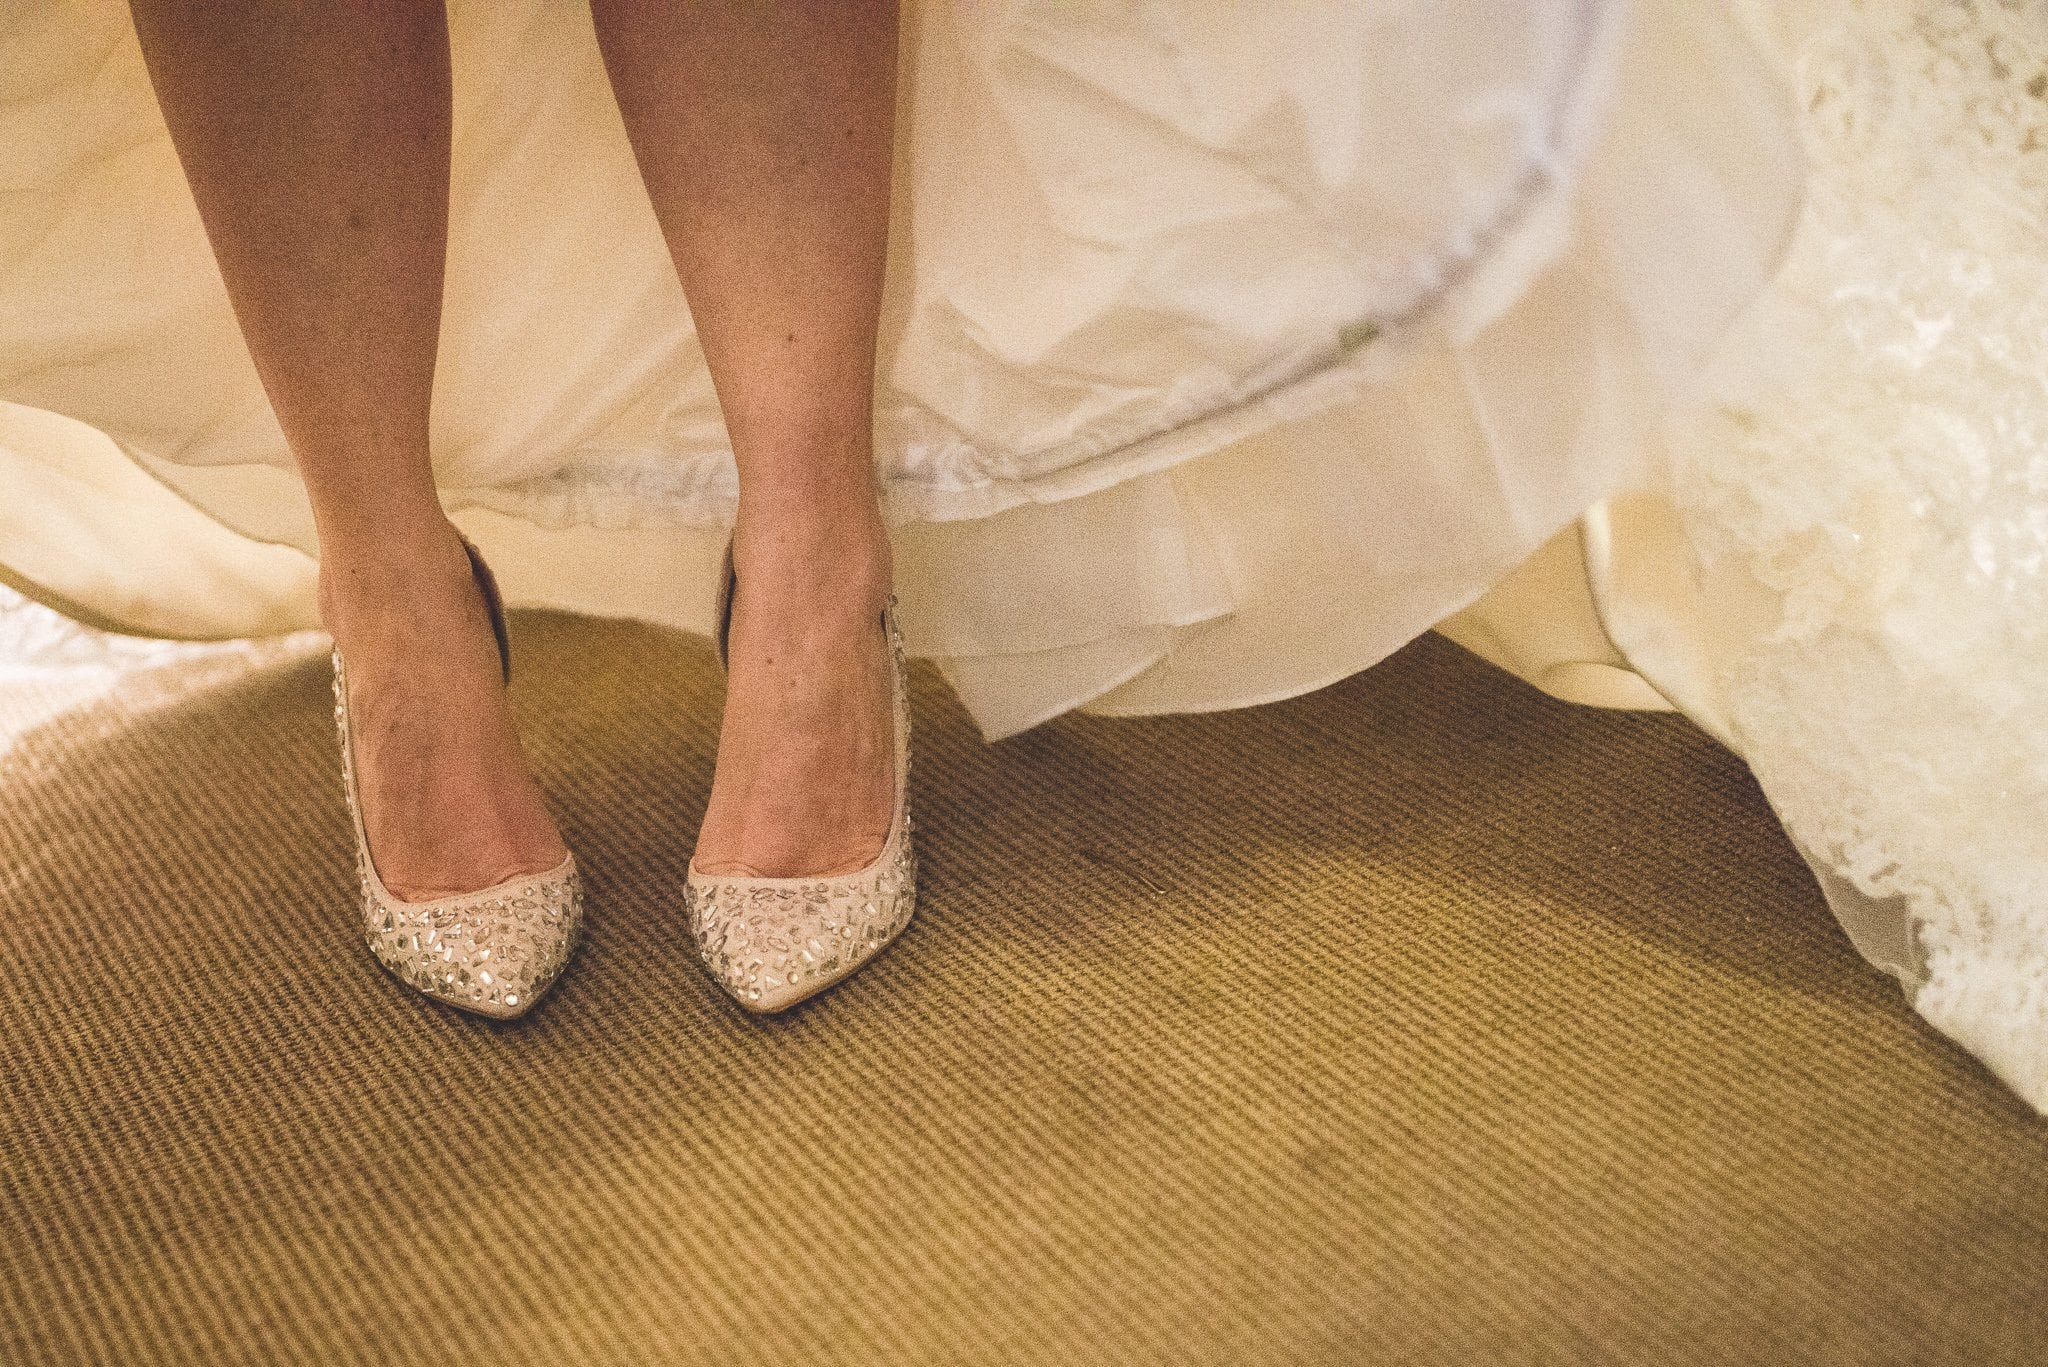 A shot of Emma's shoes underneath her dress